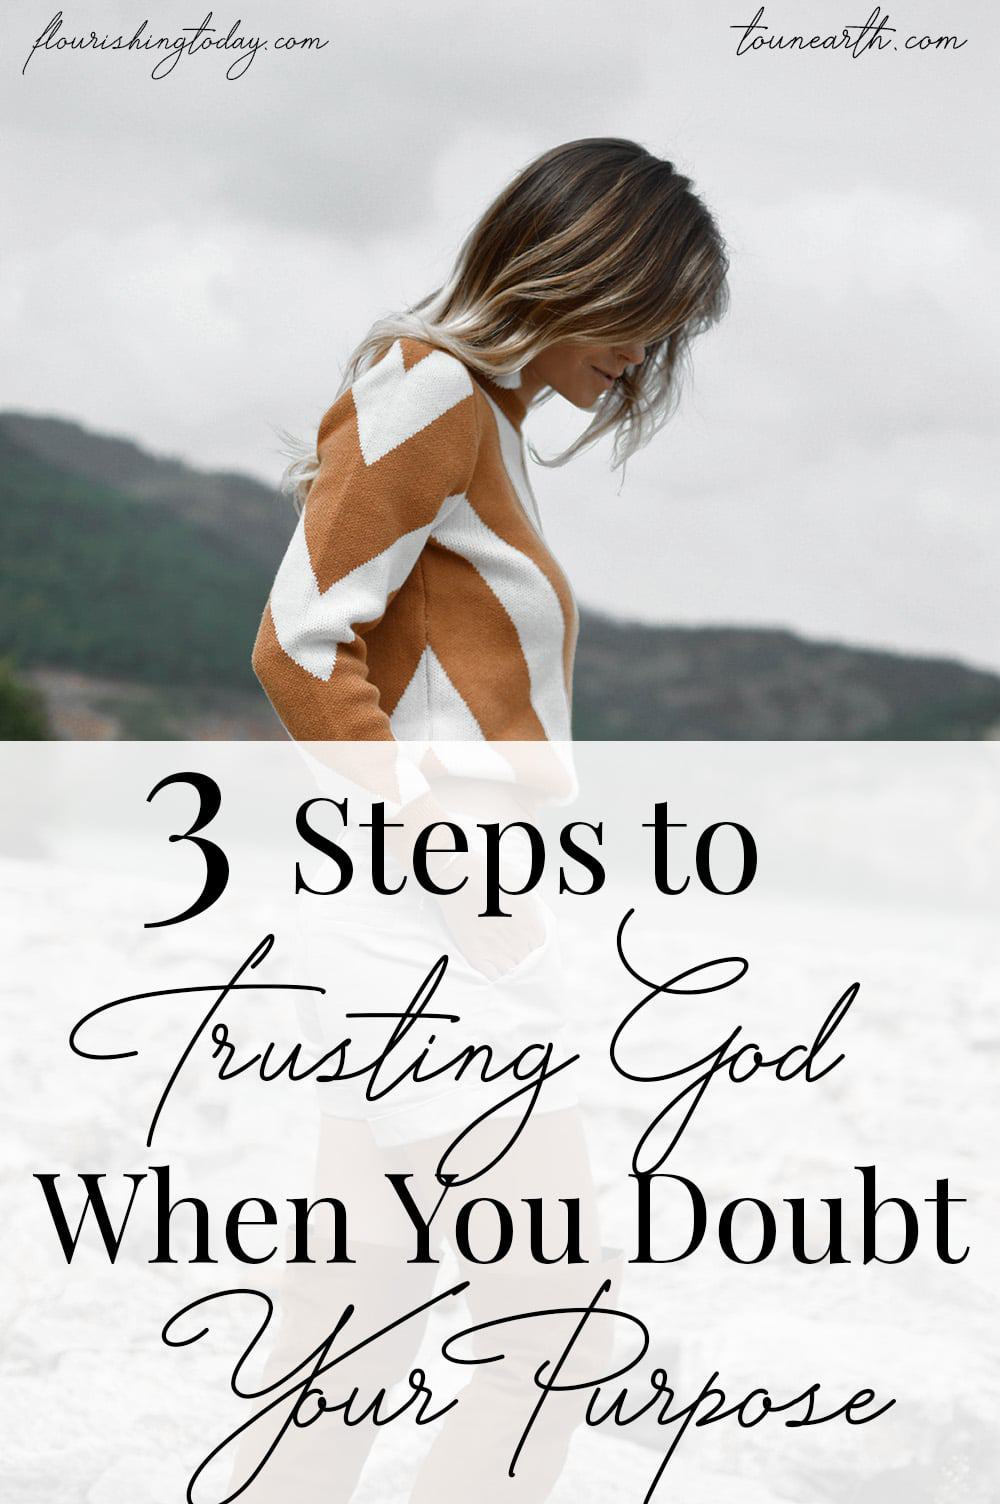 Are you doubting God's purpose for your life? Do you struggle not knowing the details of His will for you? Here's 3 steps to trusting God in the unknown. #trustingGod #purpose #walkinginpurpose #doubt